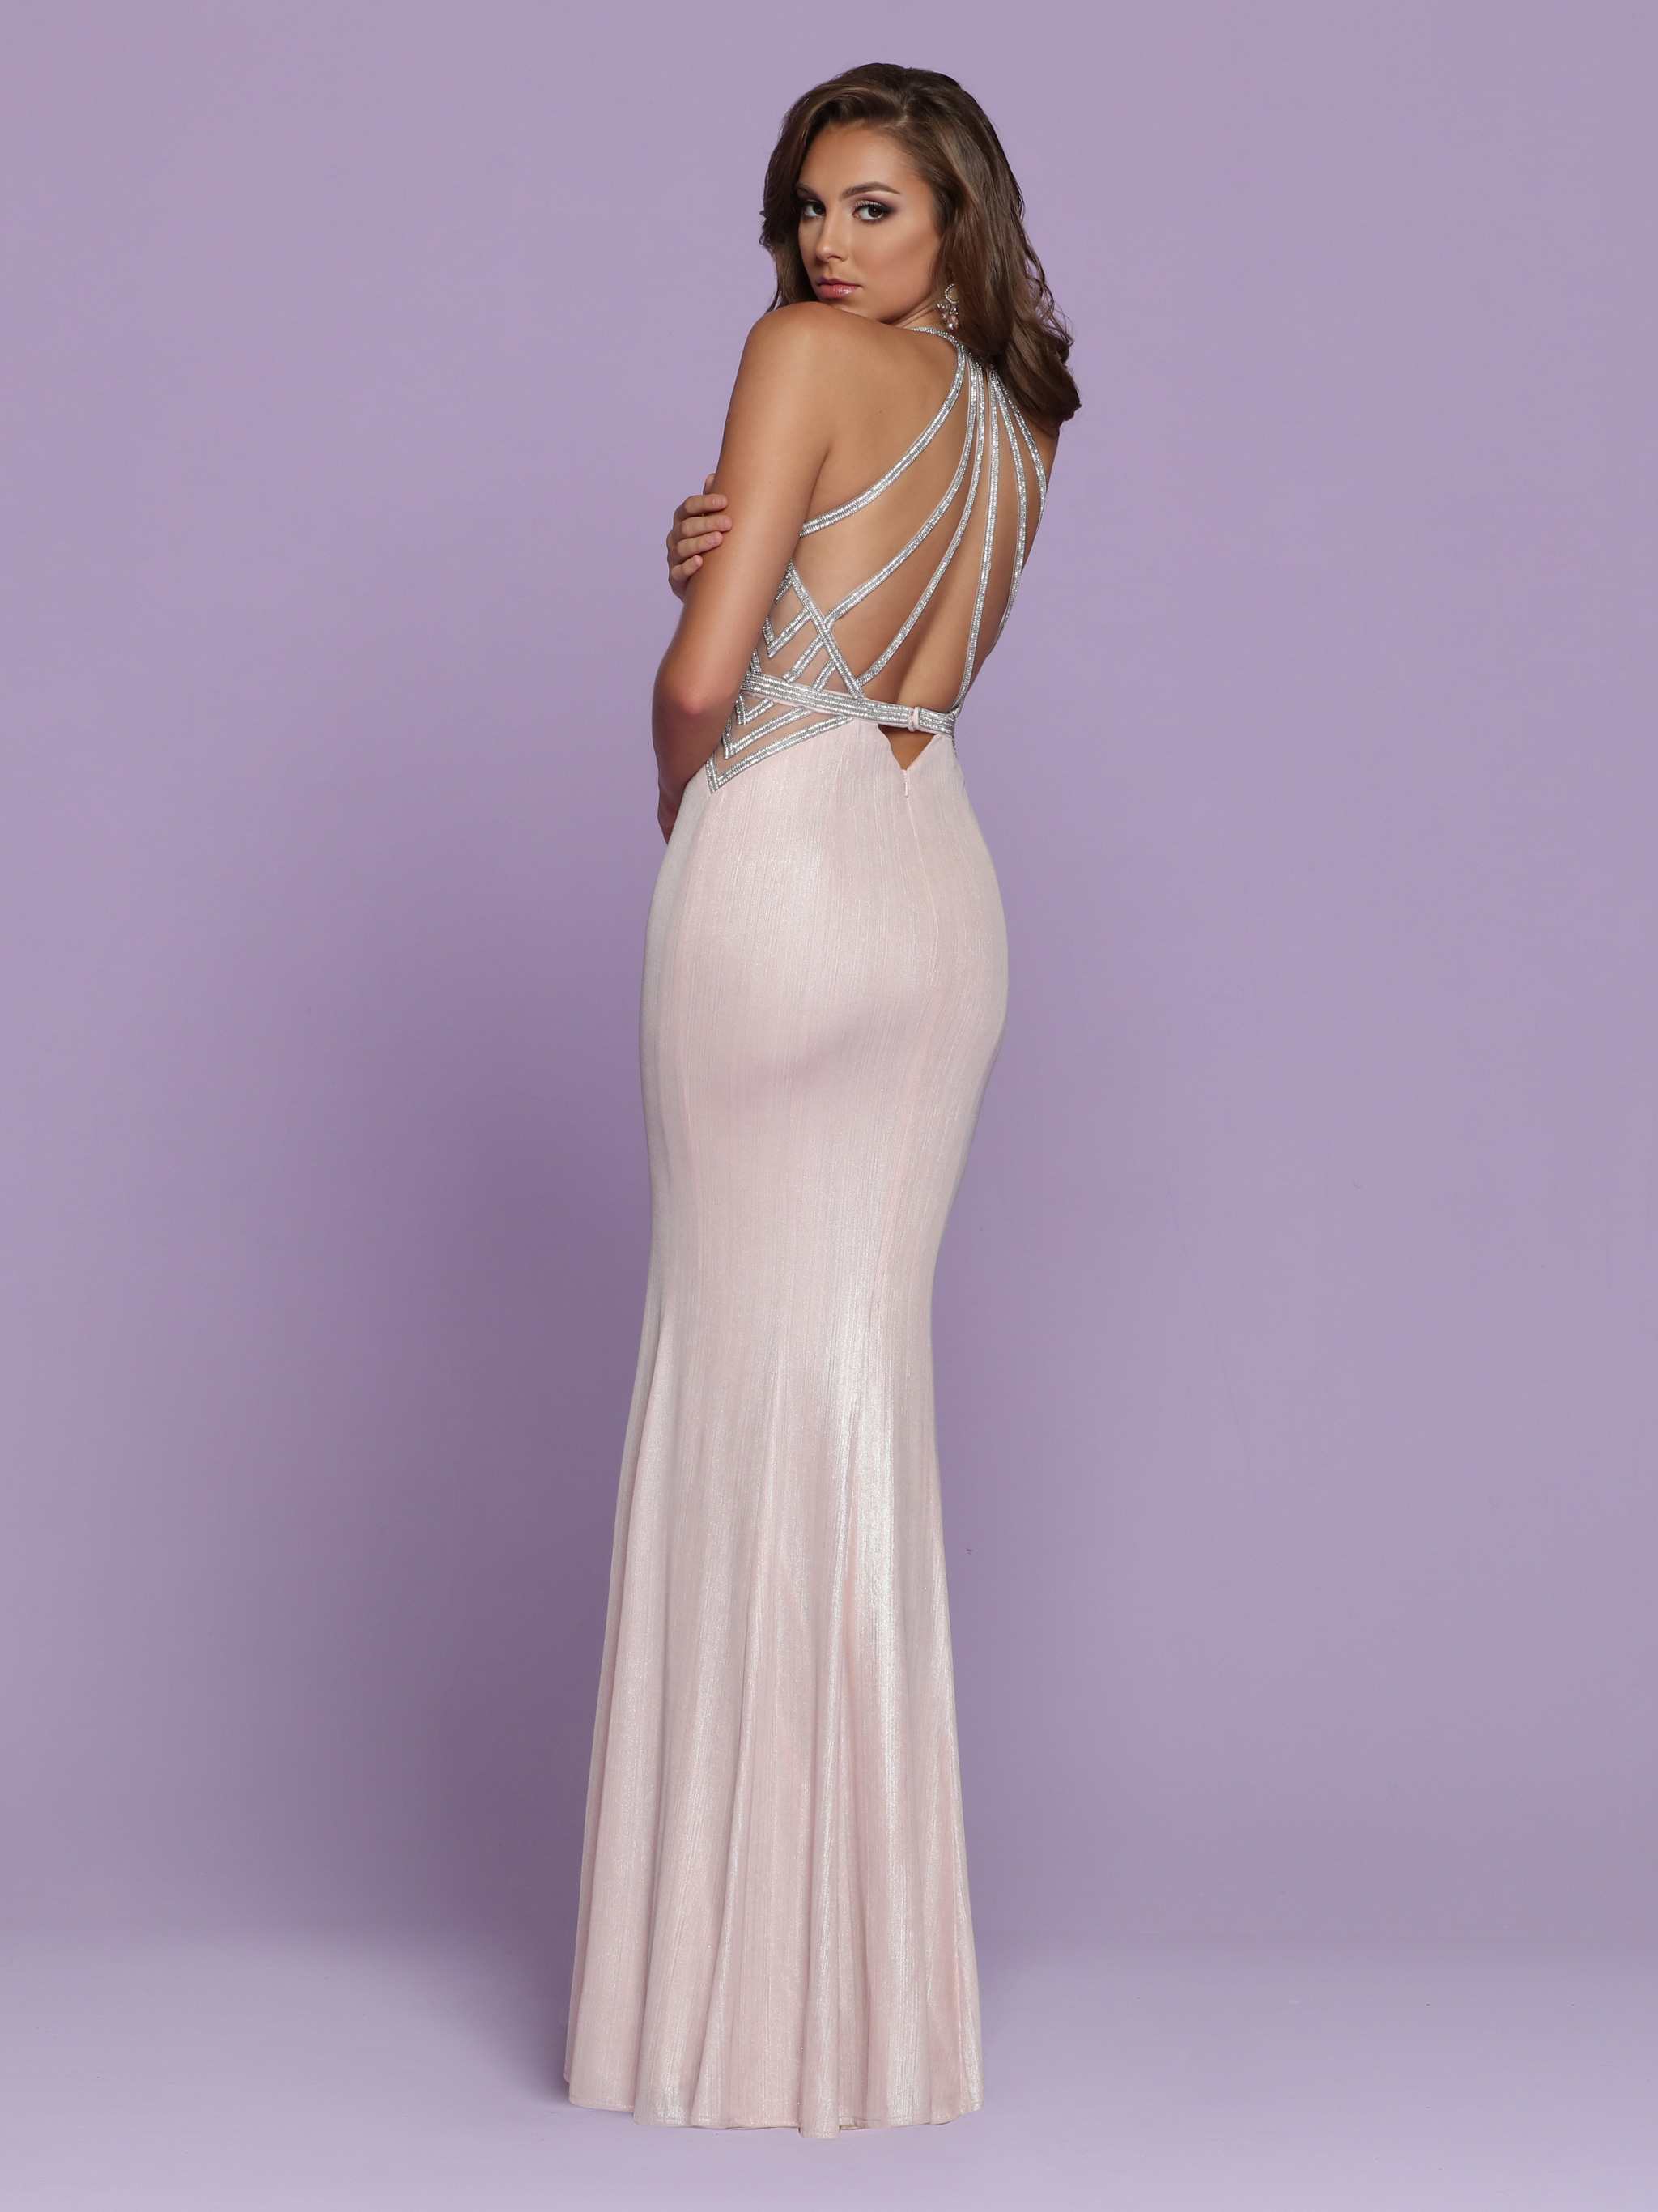 Image showing back view of style #72043